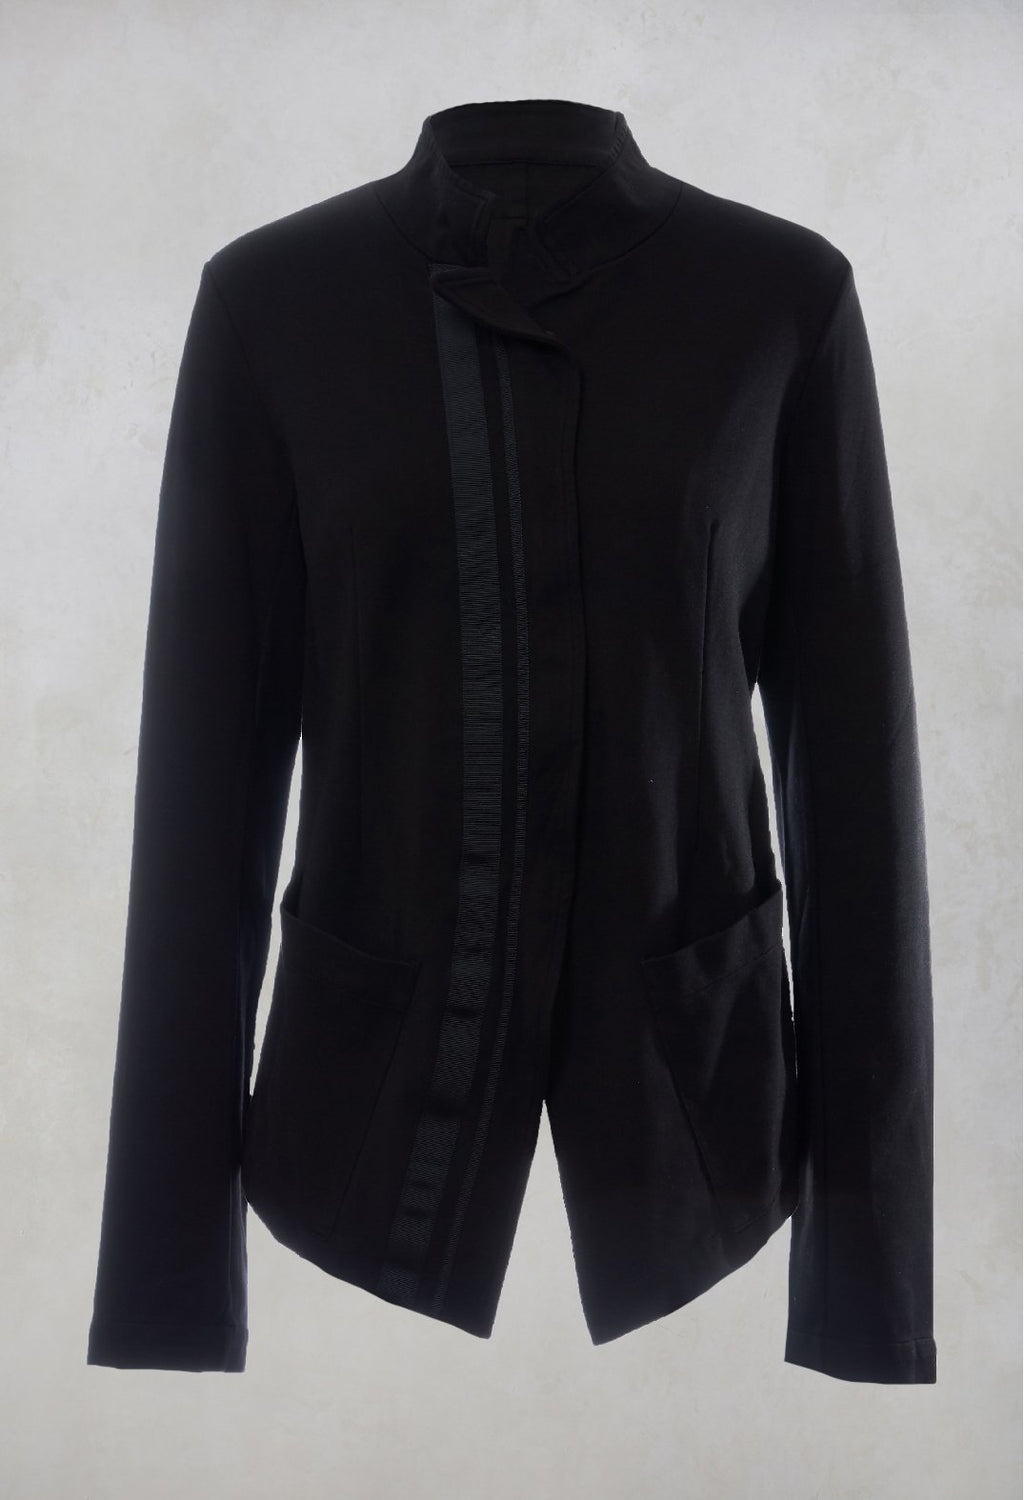 Zip Up Jacket in Black